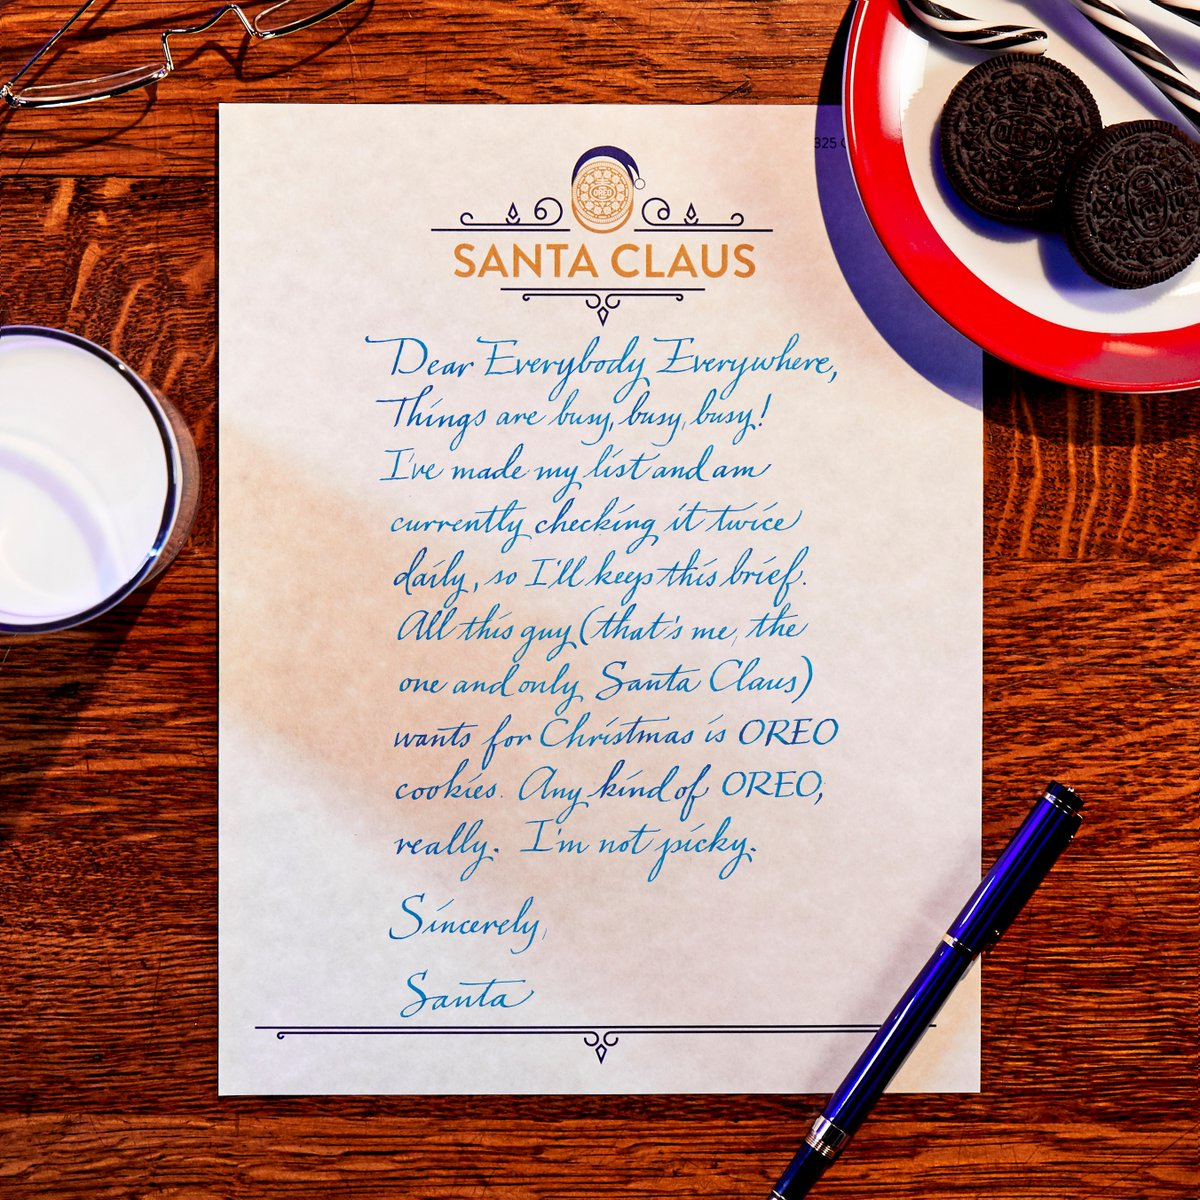 Oreo Cookie On Twitter Reminder Santa Claus Doesn T Ask For